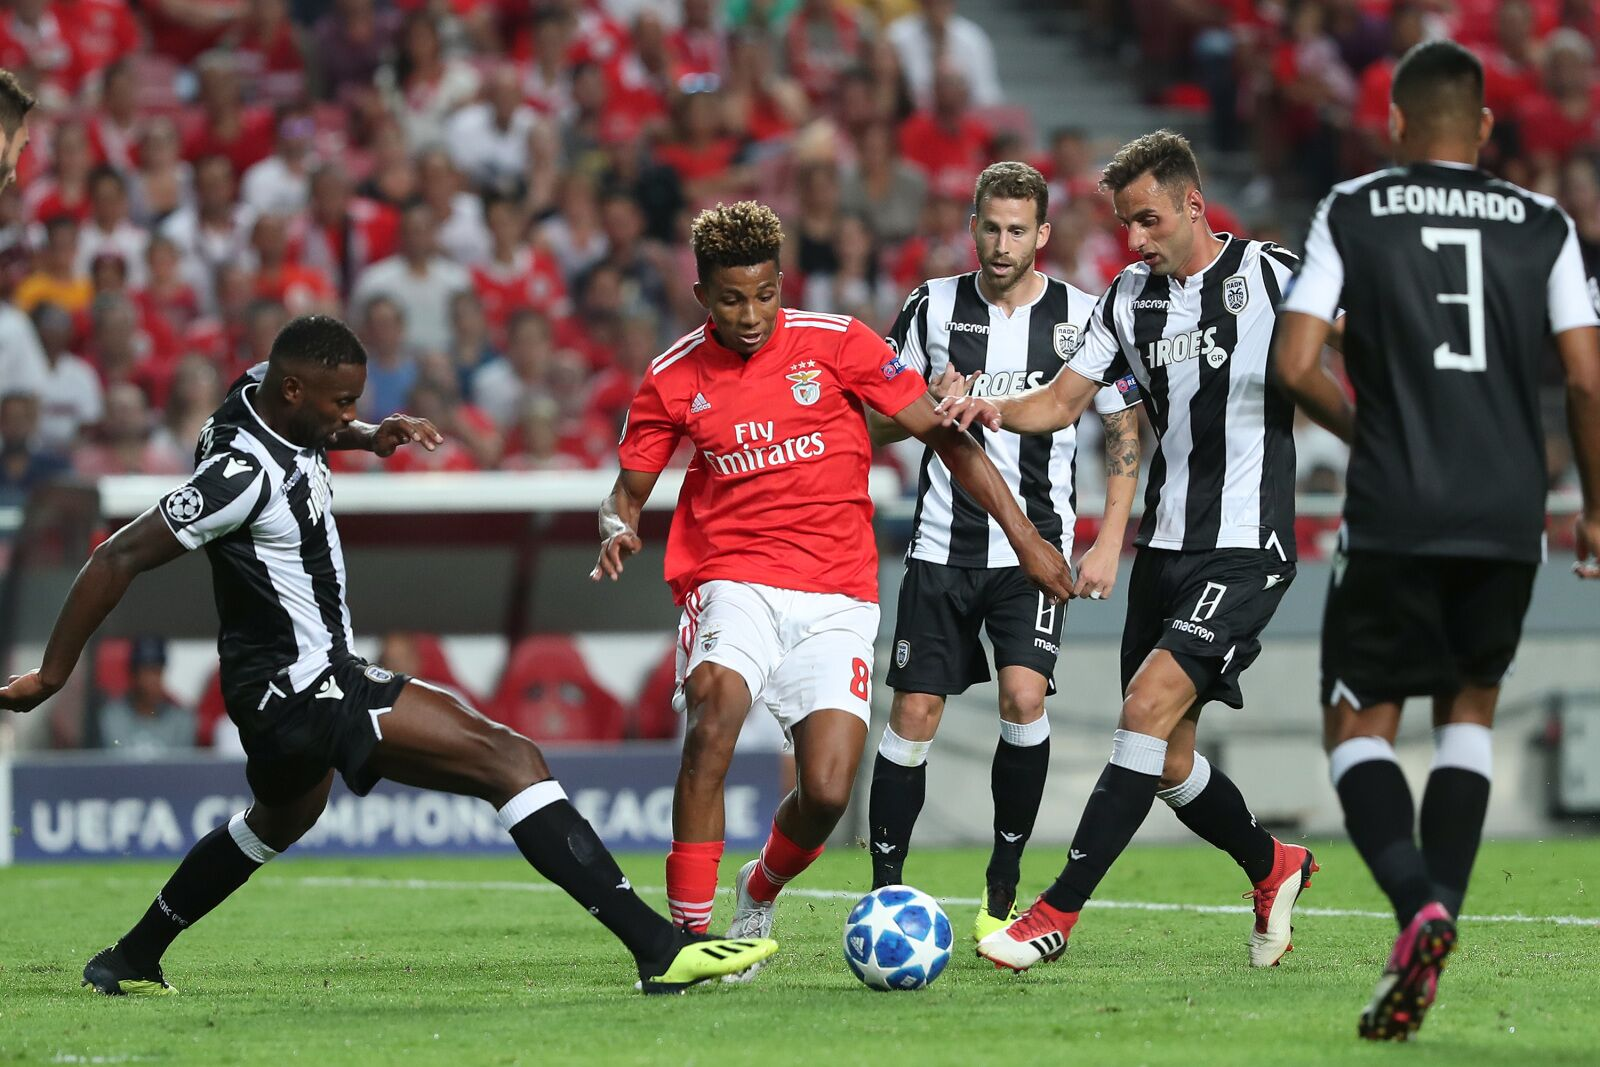 Benfica vs  Ajax live stream: Watch Champions League online